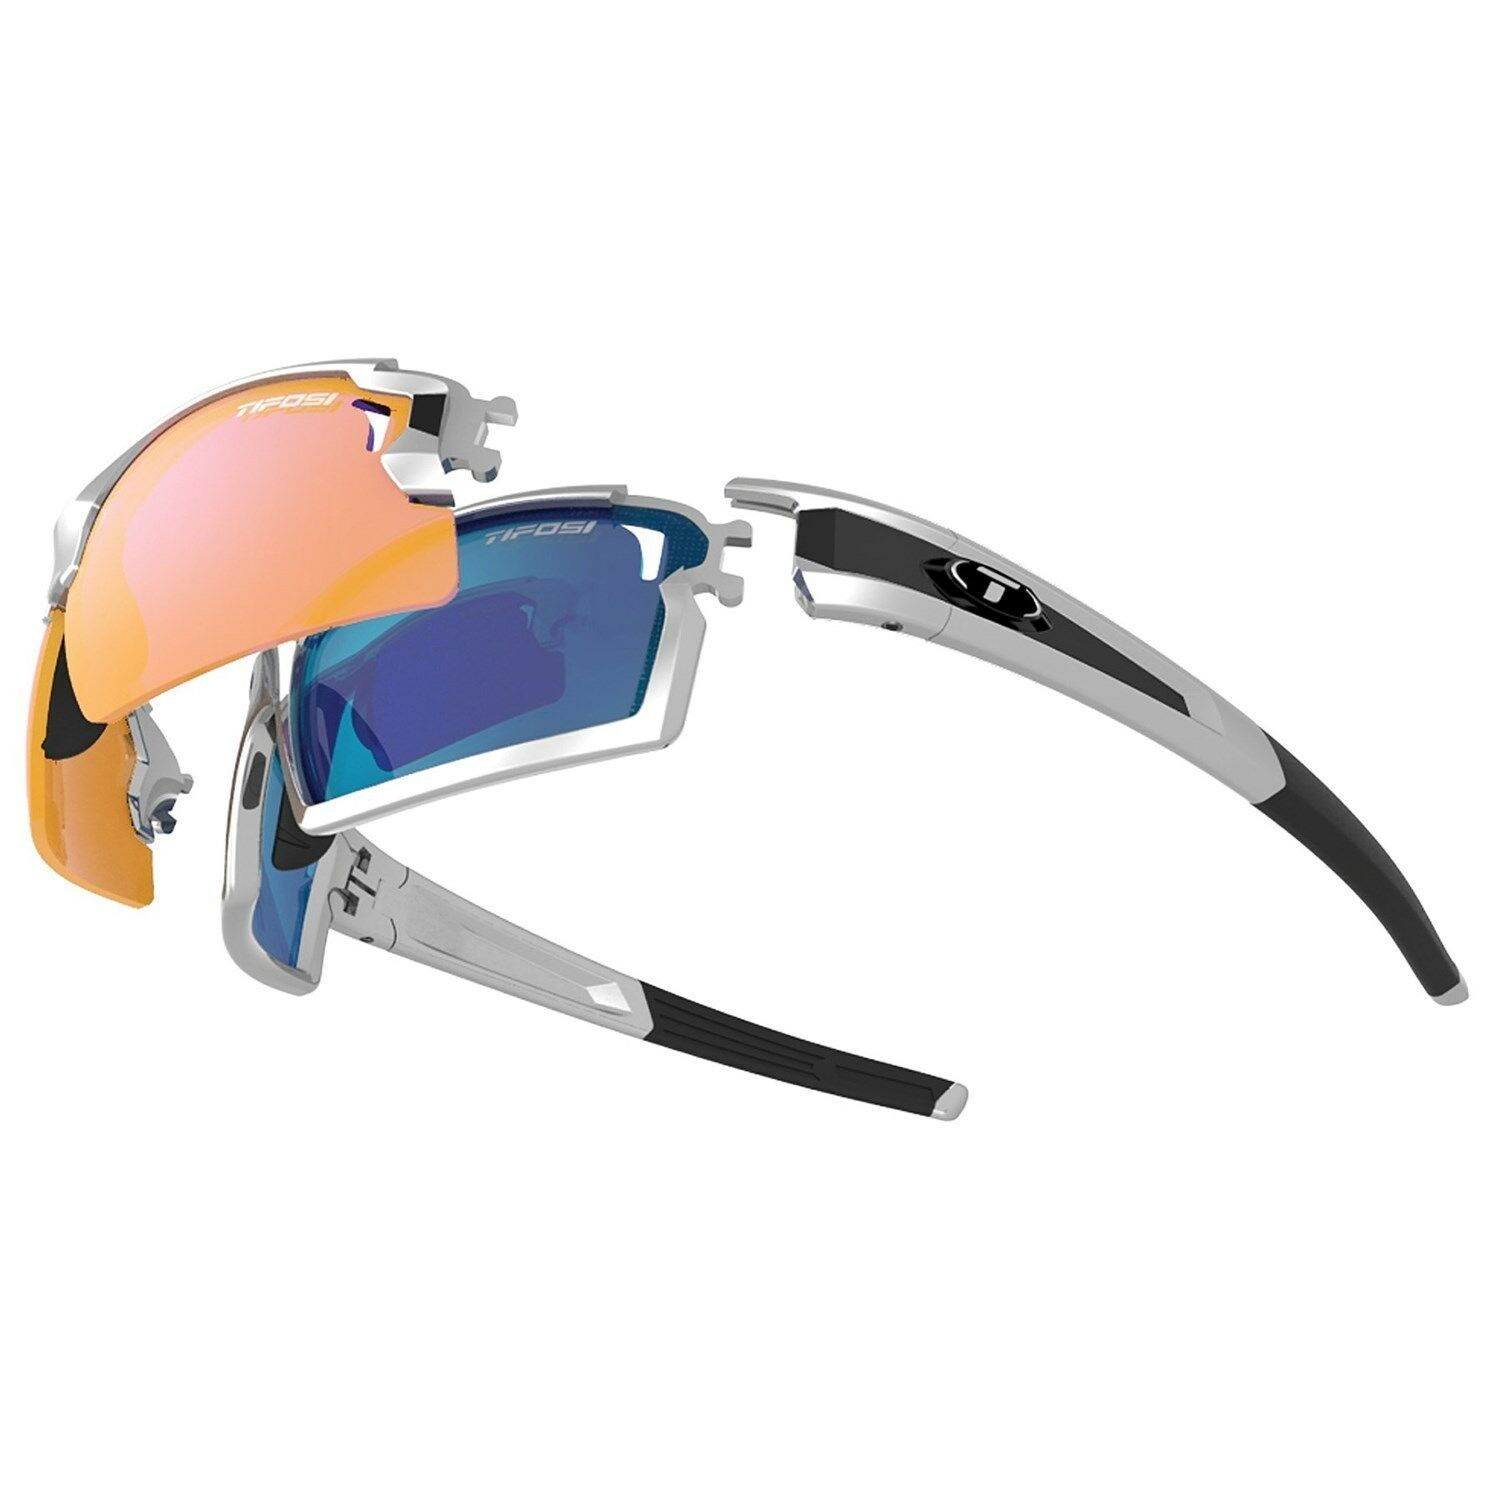 Primary image for New Tifosi Pro Escalate F.H. Sunglasses Kit   Interchangeable Lenses